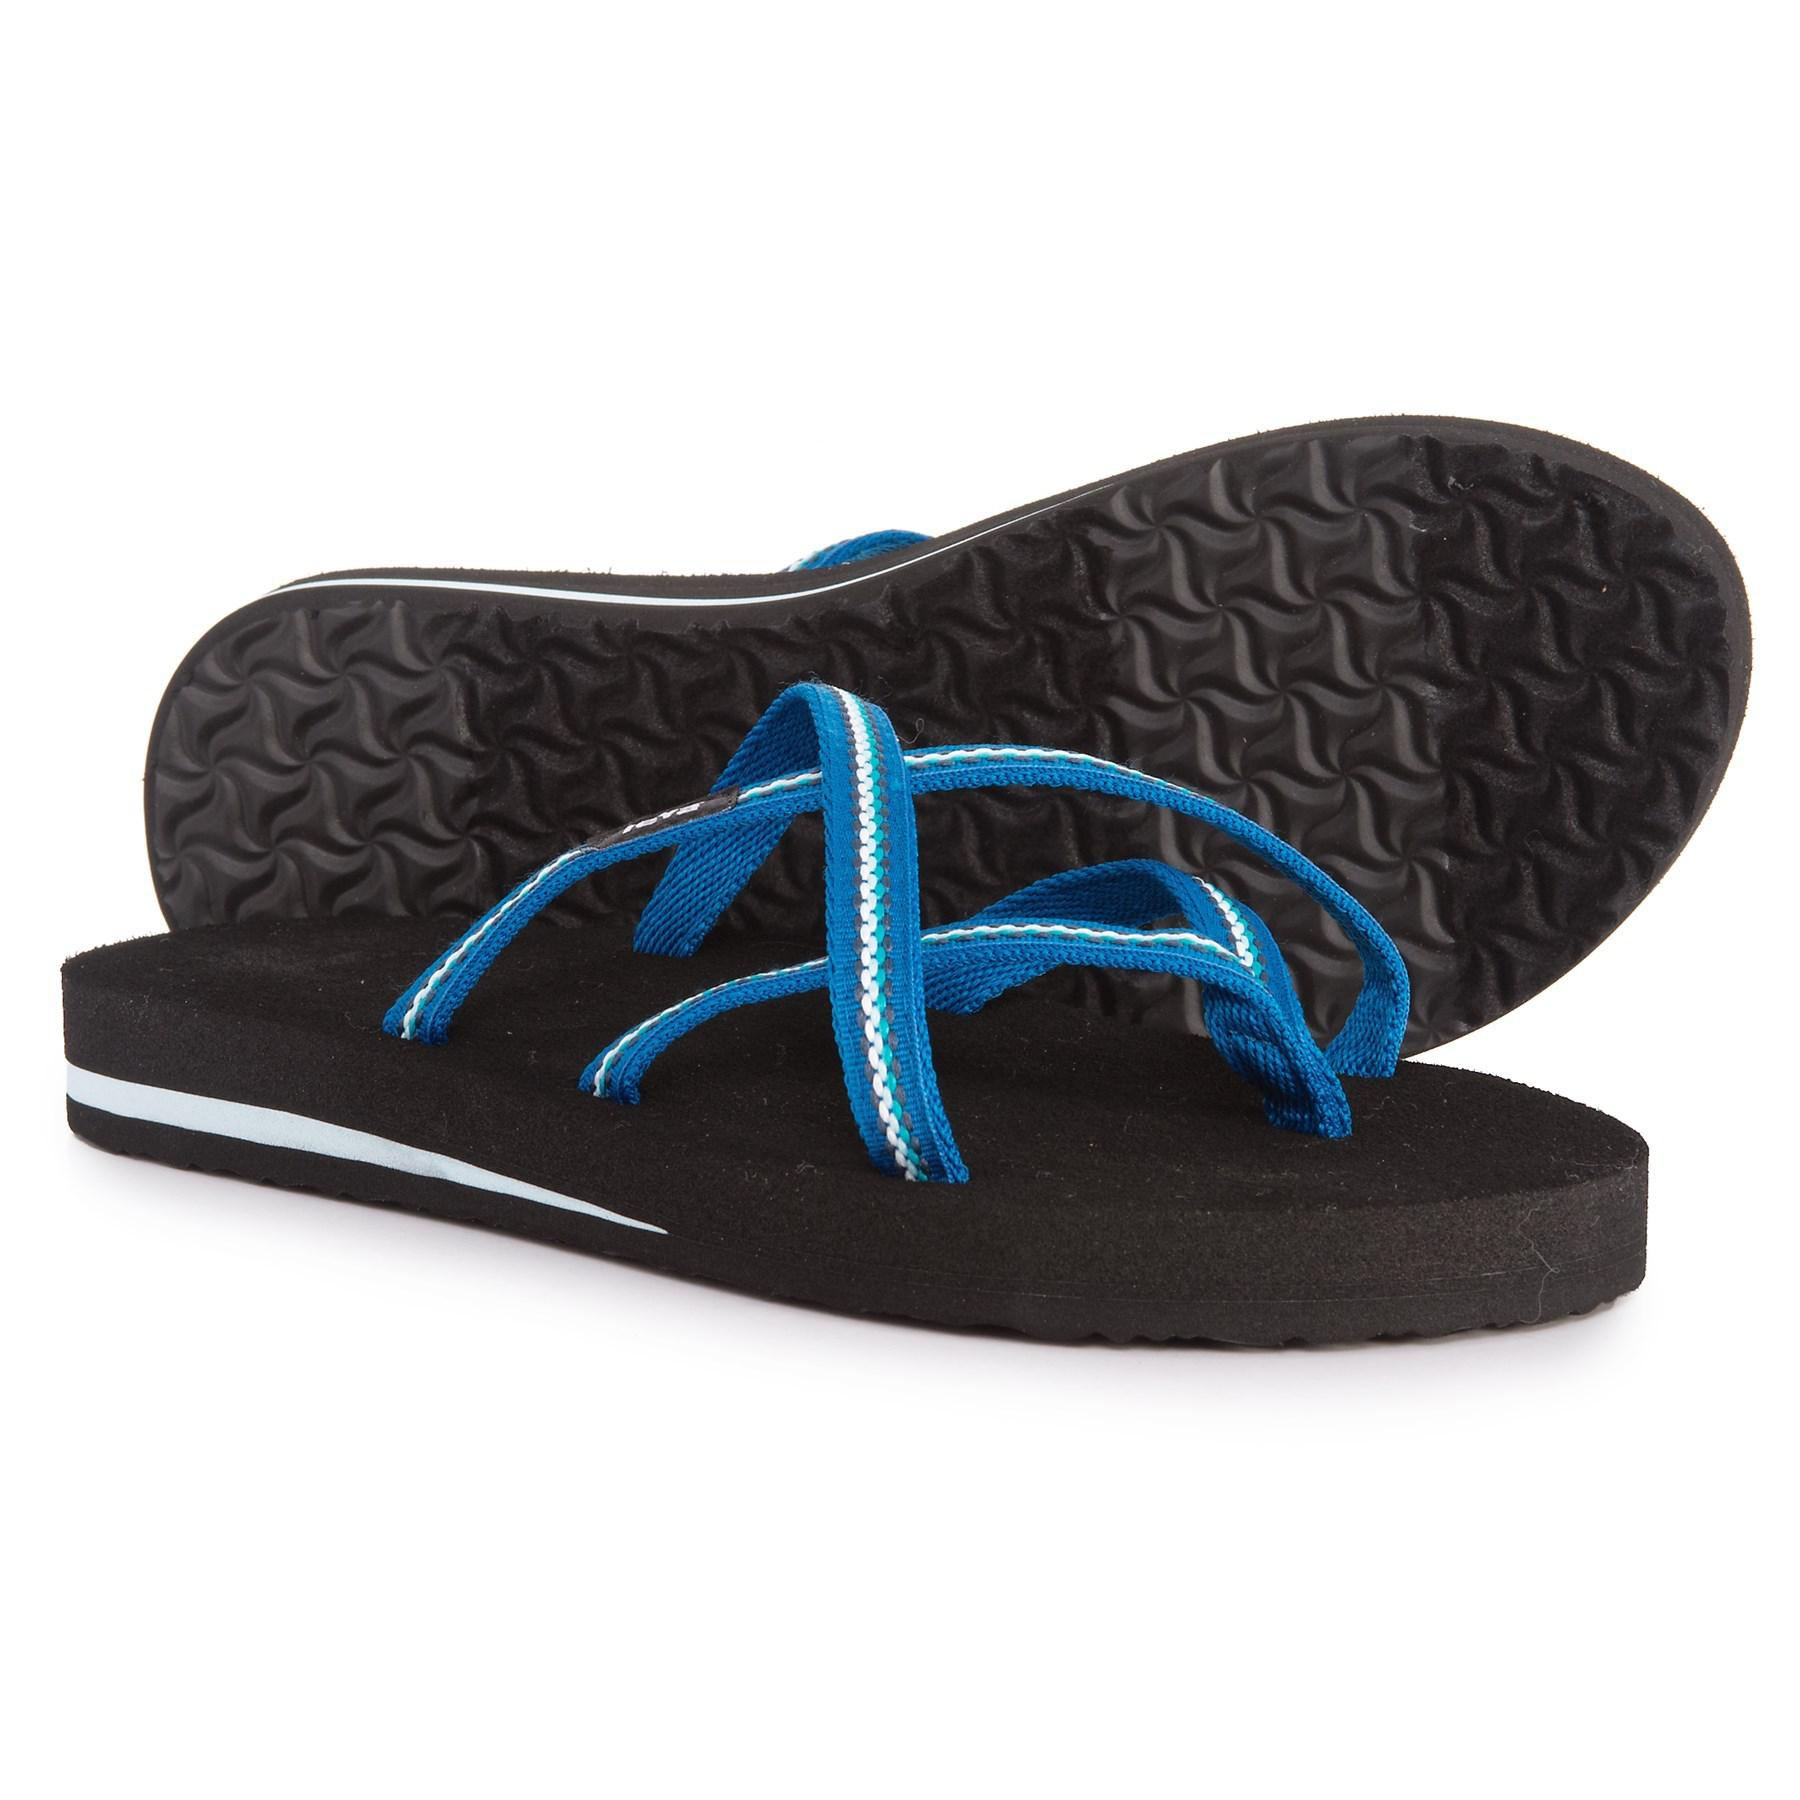 04cf962e5072 Lyst - Teva Olowahu Flip-flops (for Women) in Blue - Save 76%